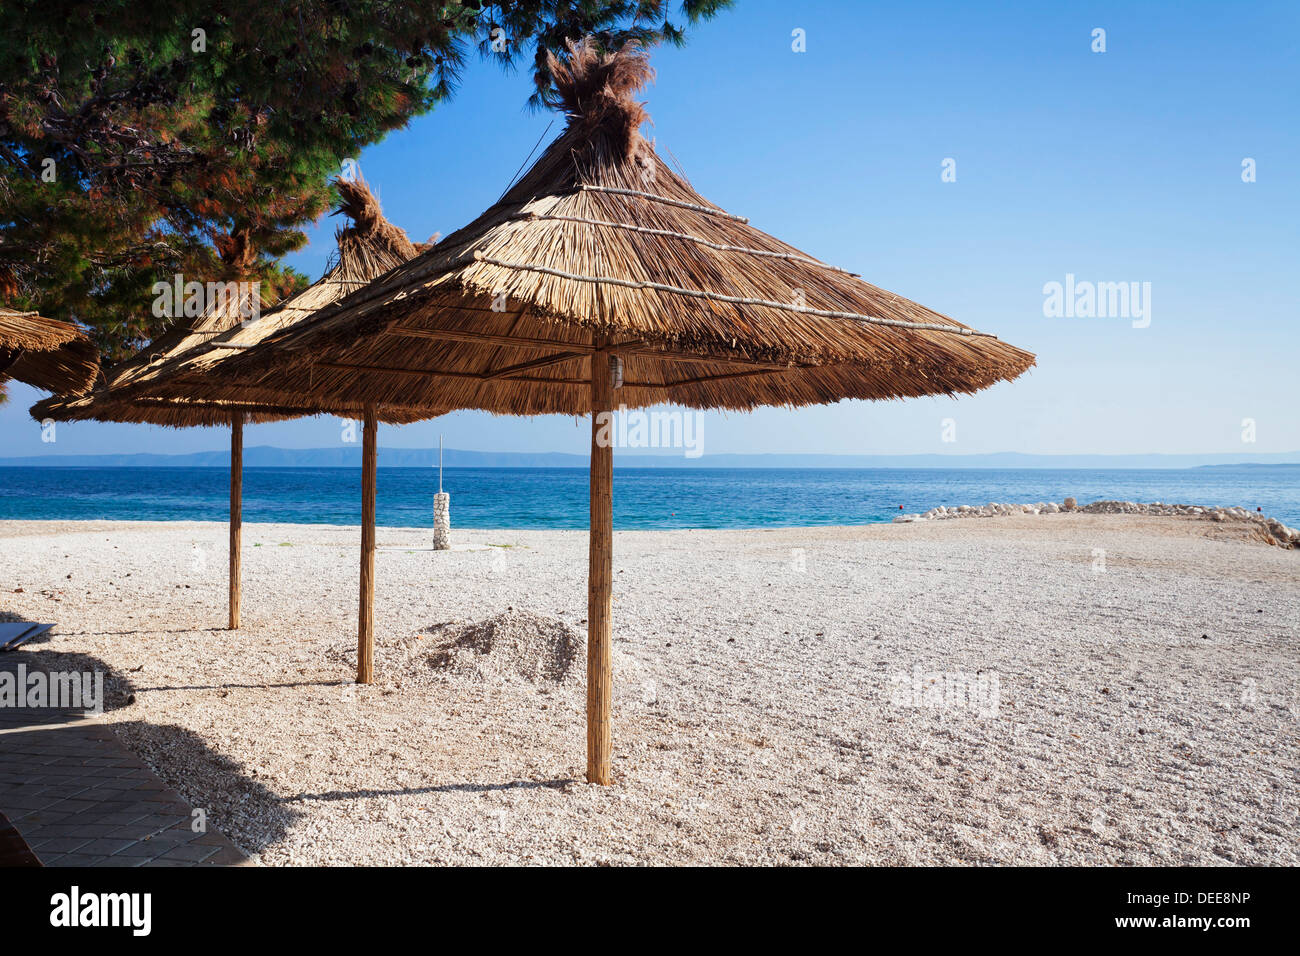 Beach of Baska Voda, Makarska Riviera, Dalmatia, Croatia, Europe - Stock Image